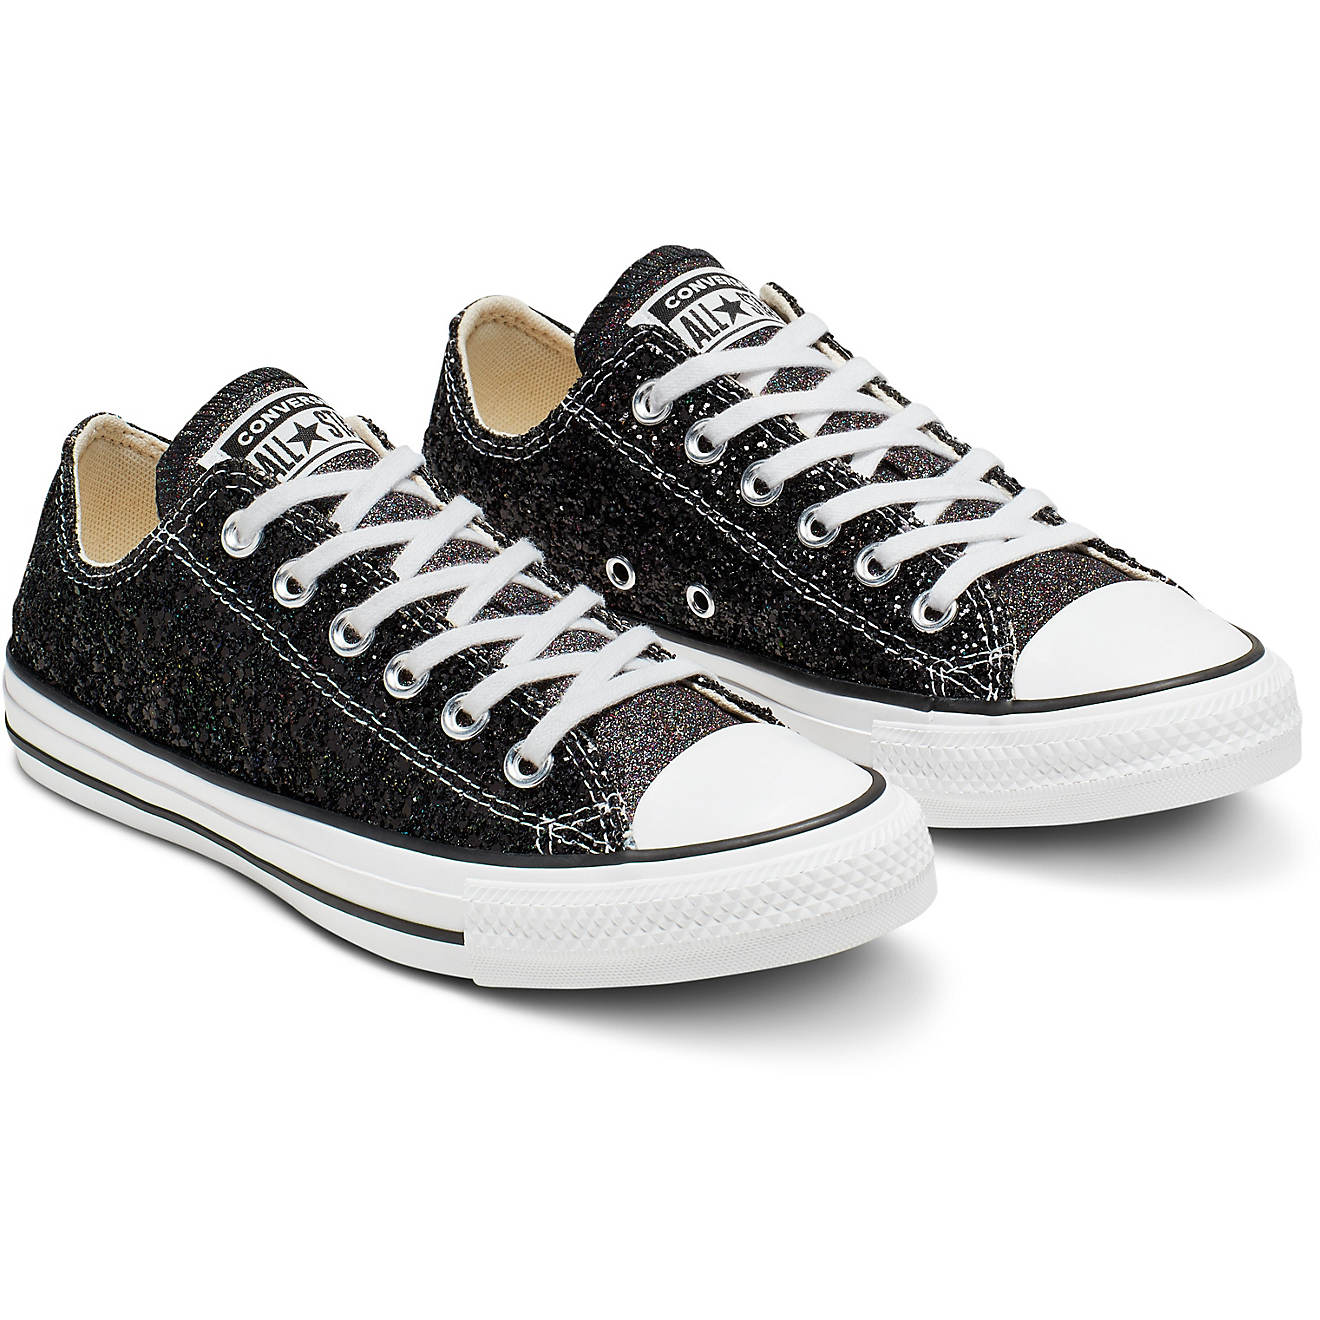 Converse Women's Chuck Taylor All Star Dust Shoes